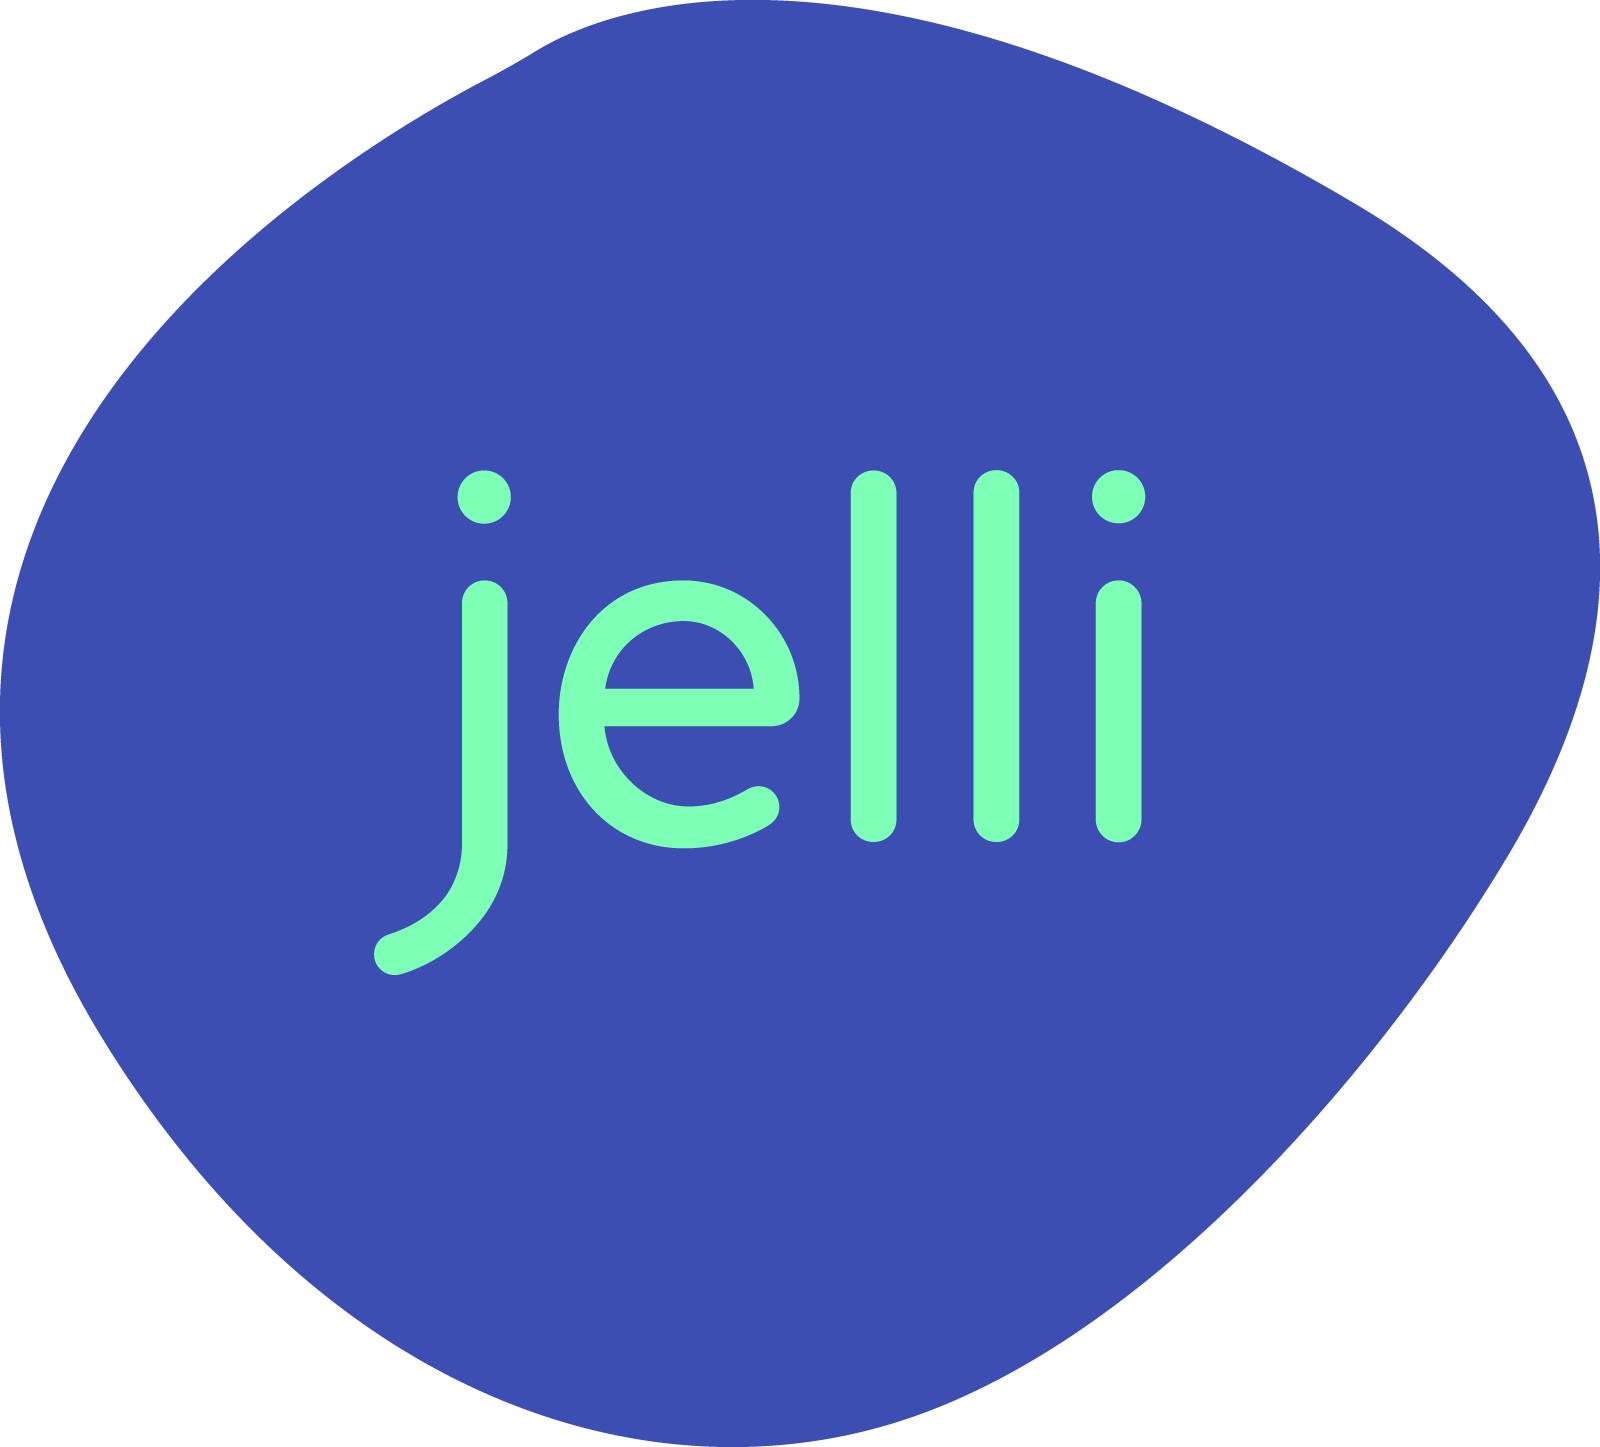 Jelli Group Ltd